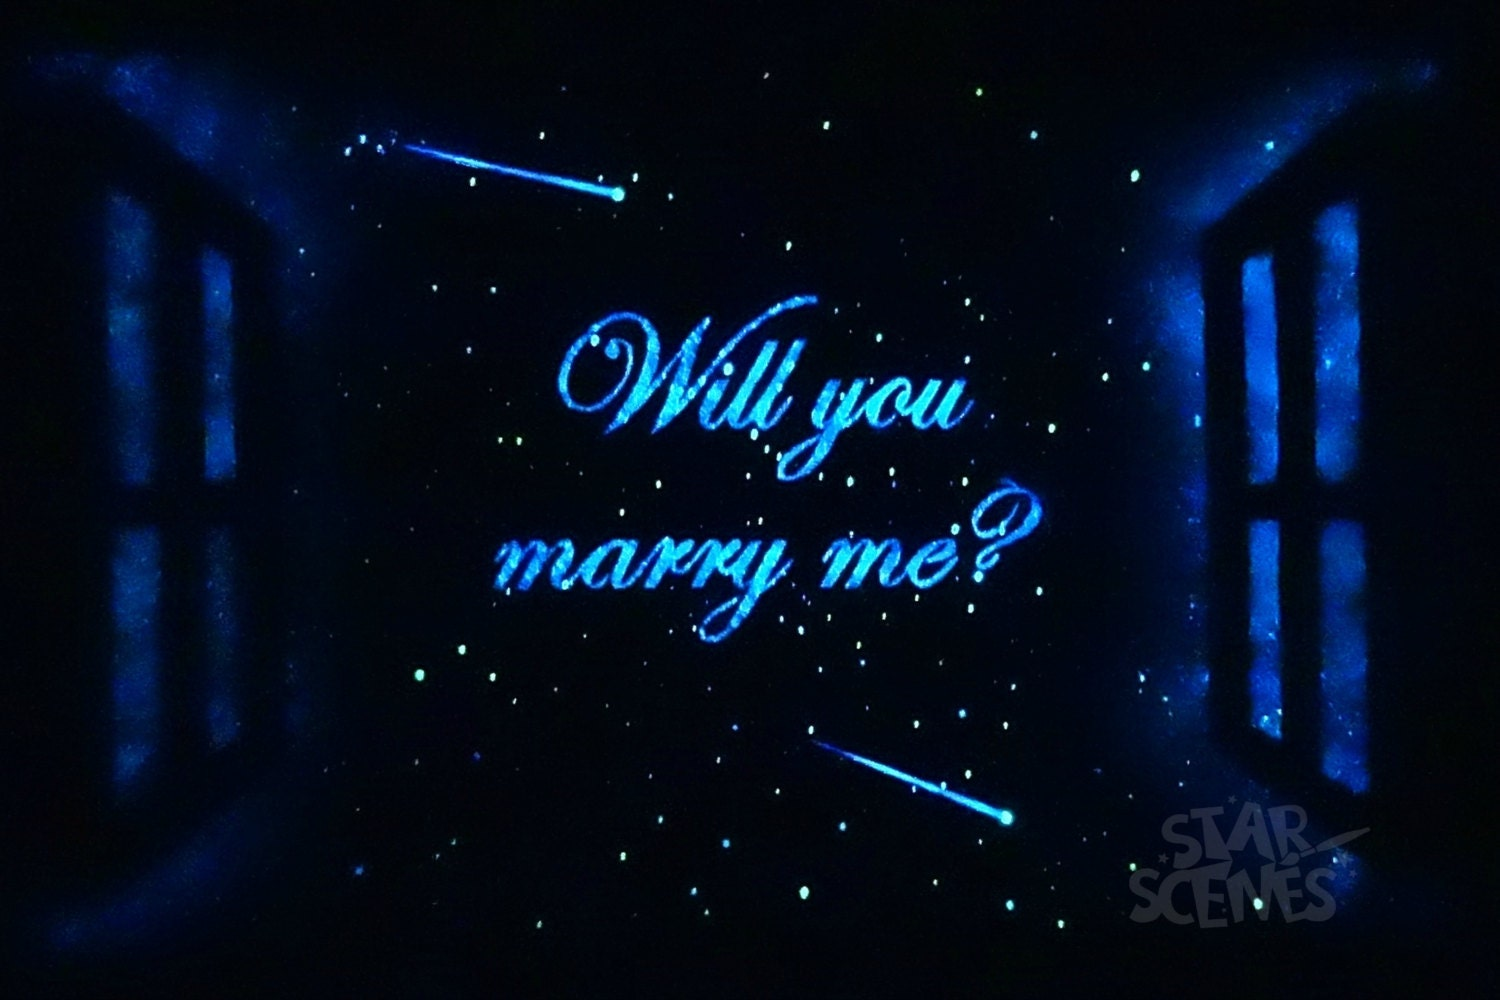 glow in the dark paint for wallsWill you marry me Star Window featuring glow in the dark